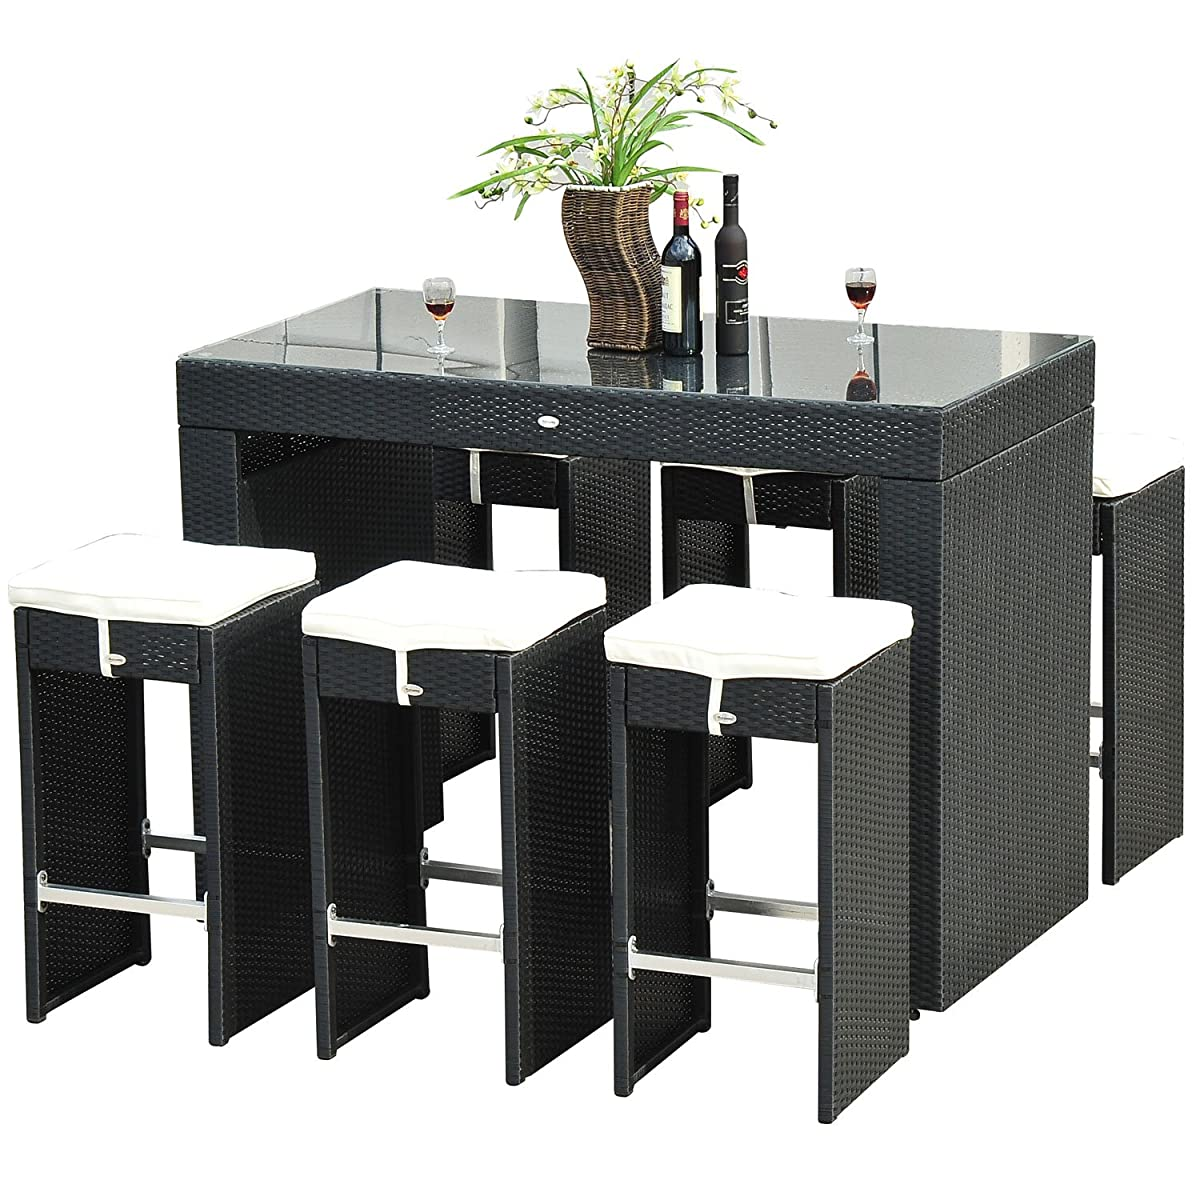 Outsunny 7 Piece Outdoor Rattan Wicker Bar Pub Table & Chairs Patio Dining Set - Black